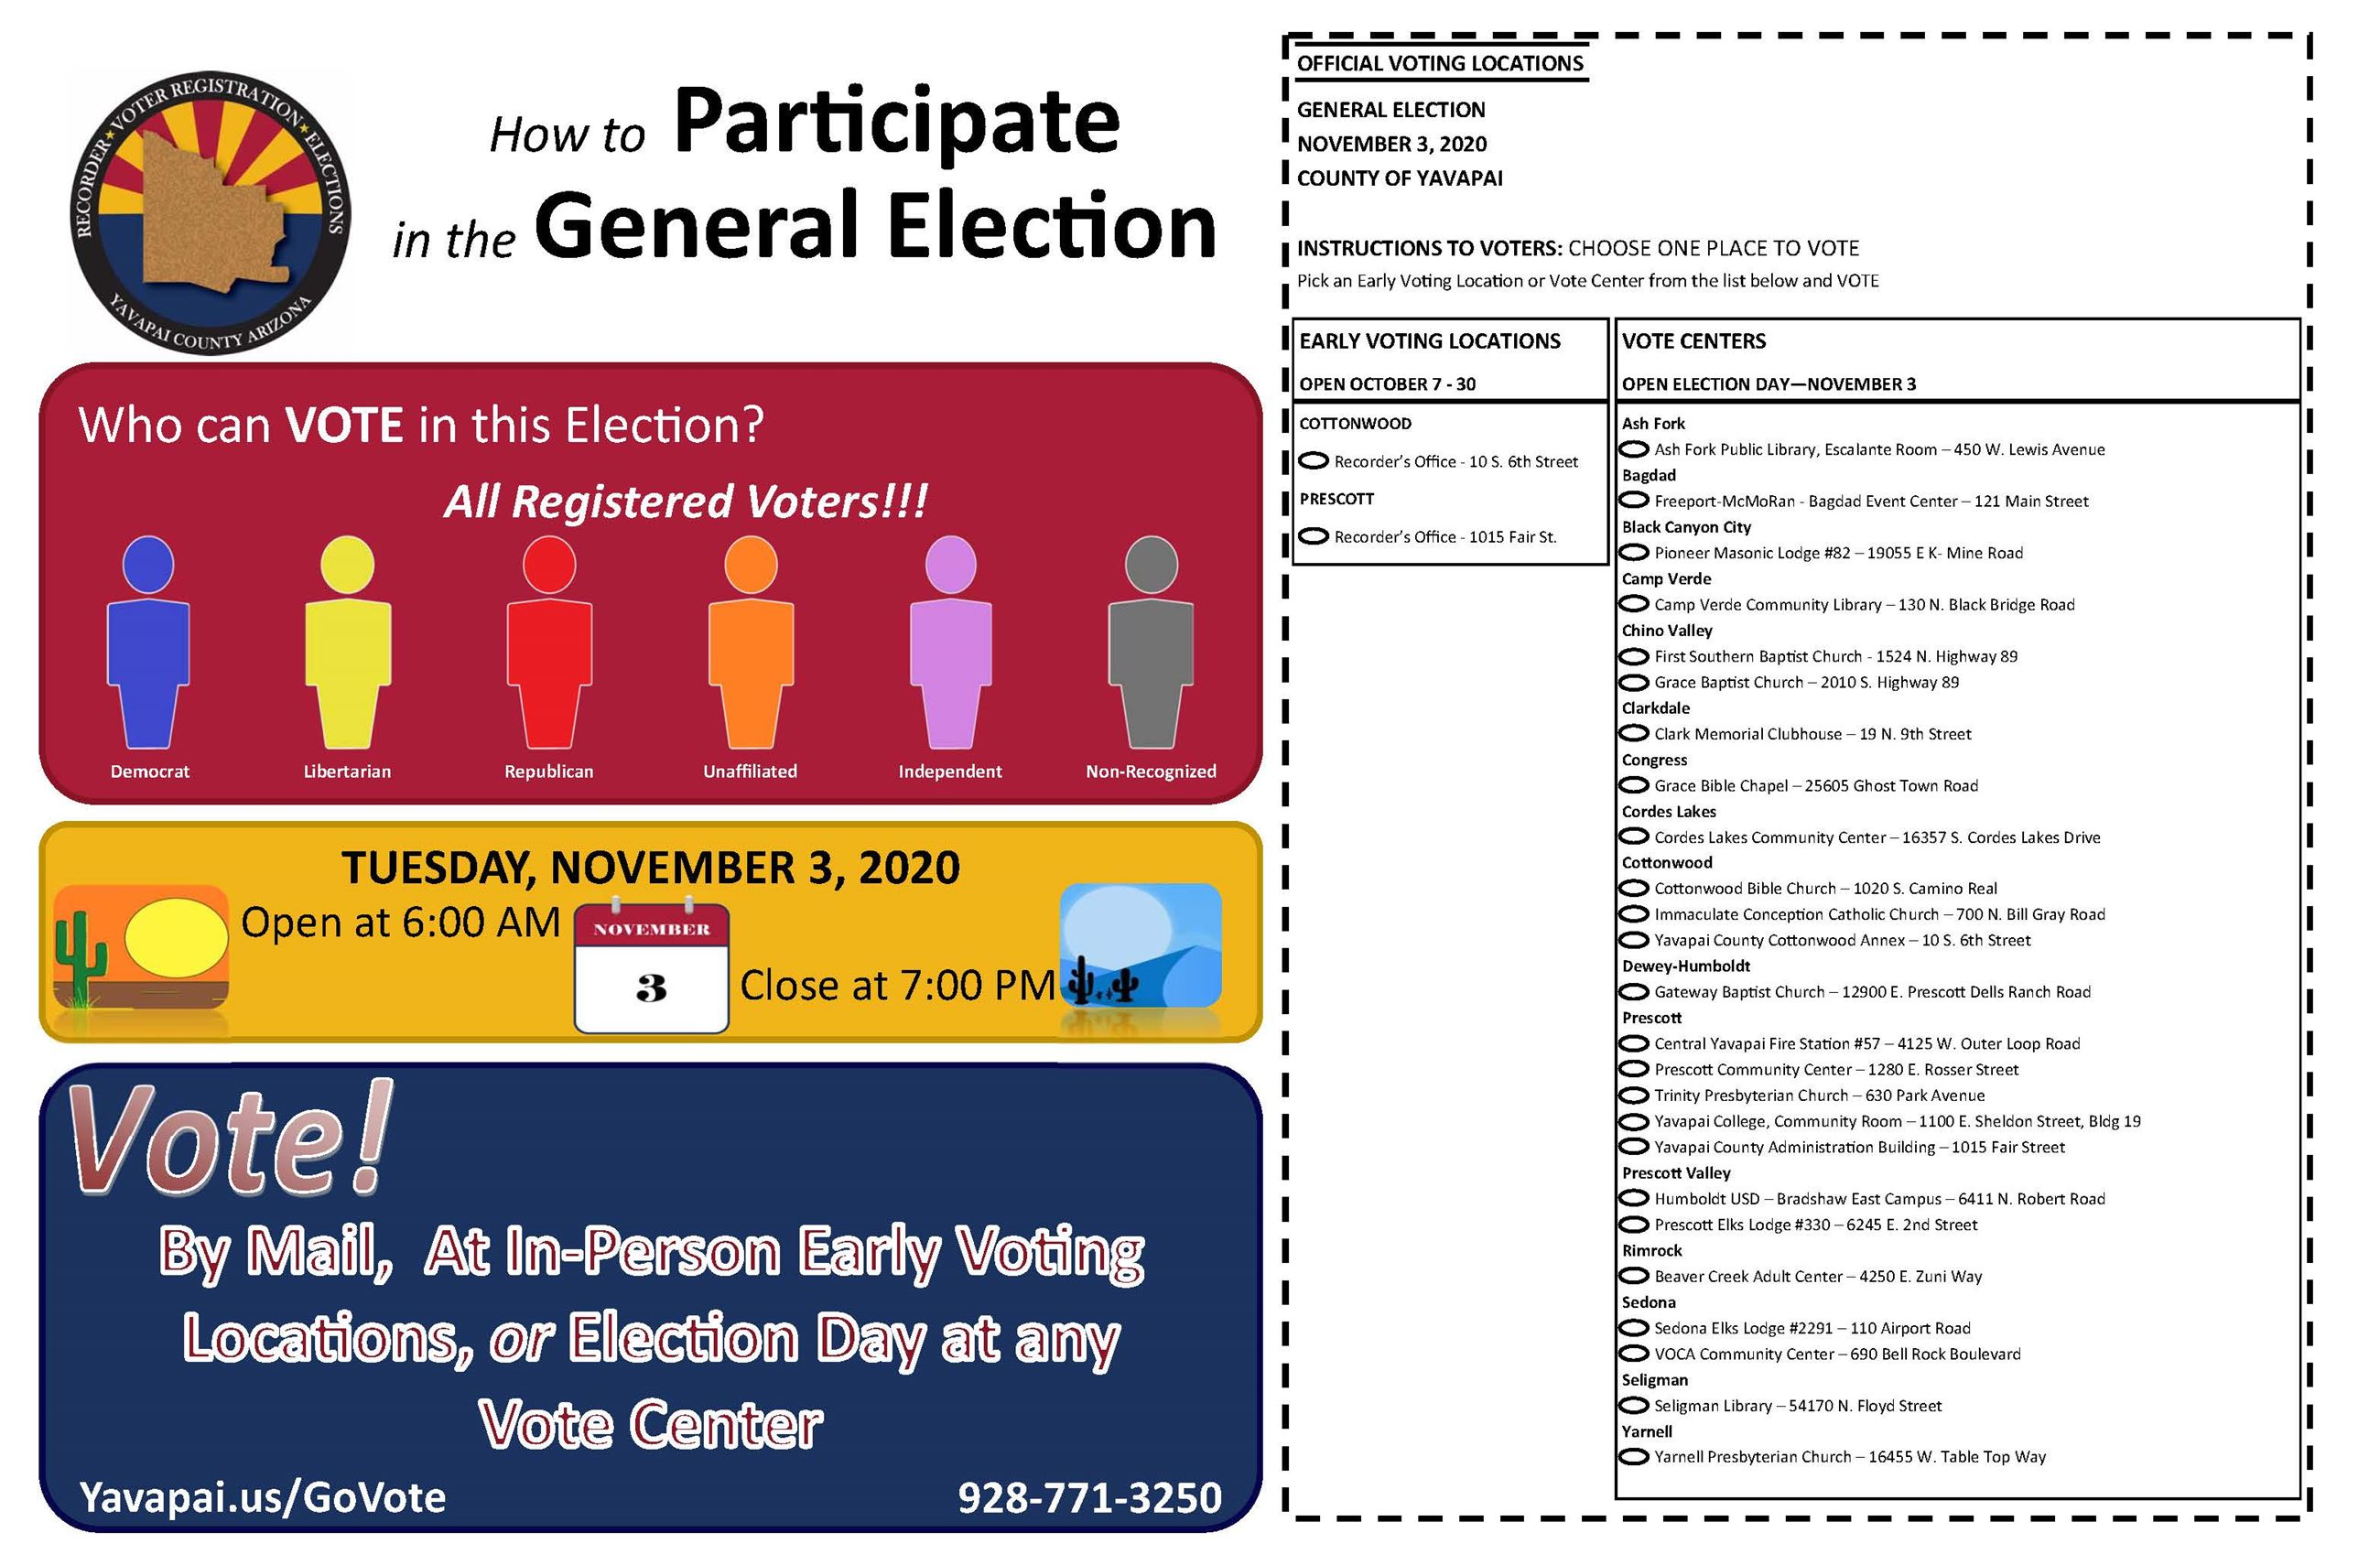 How To Participate in the General Election